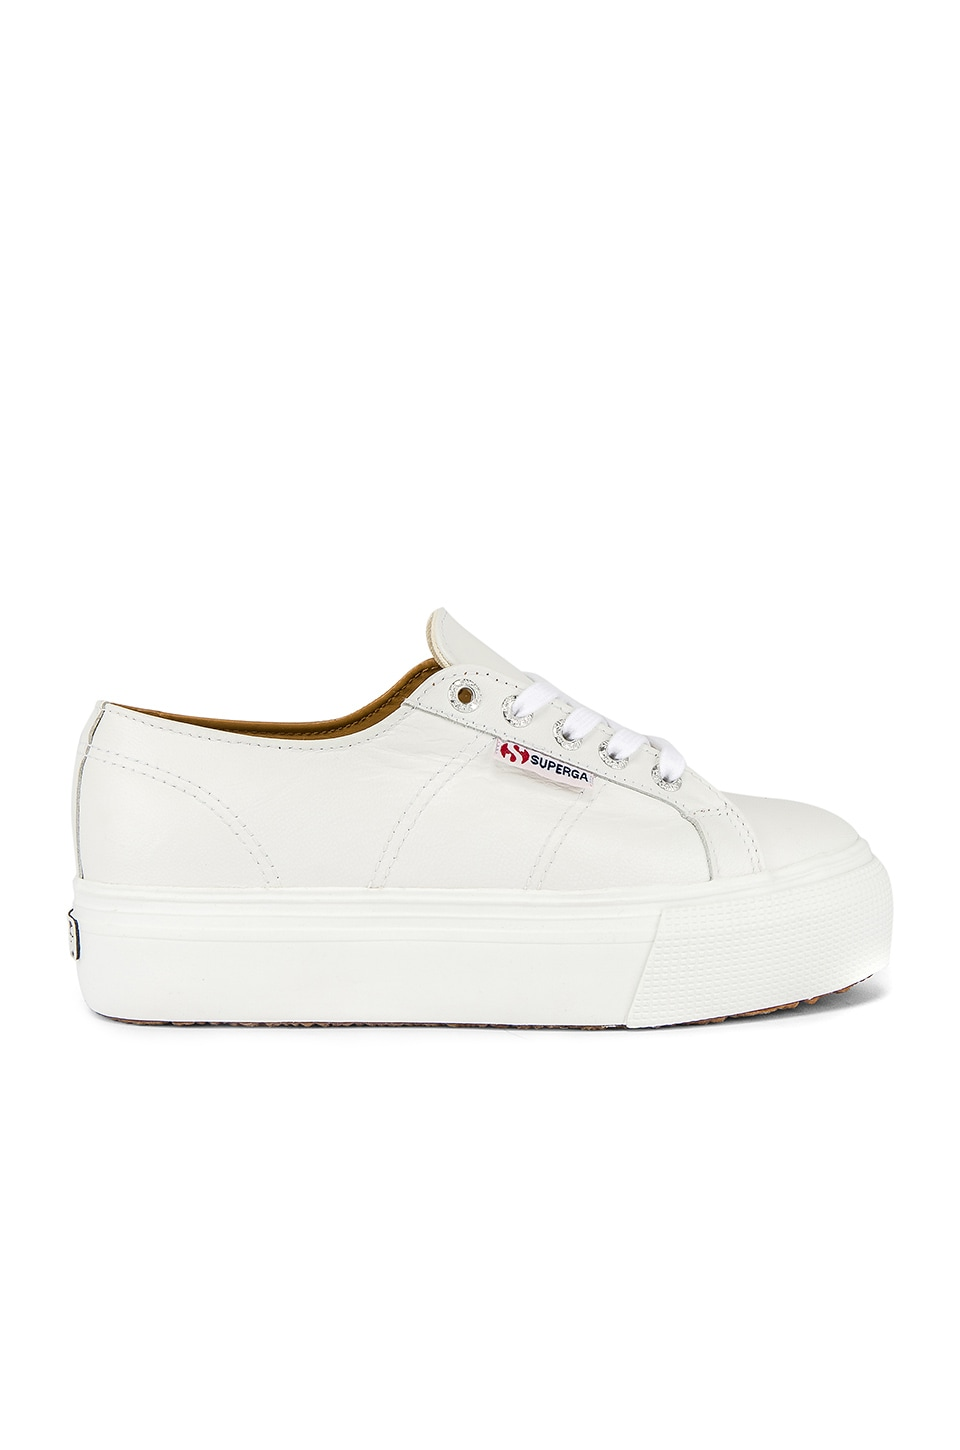 Superga 2790 Fglw Sneaker in White